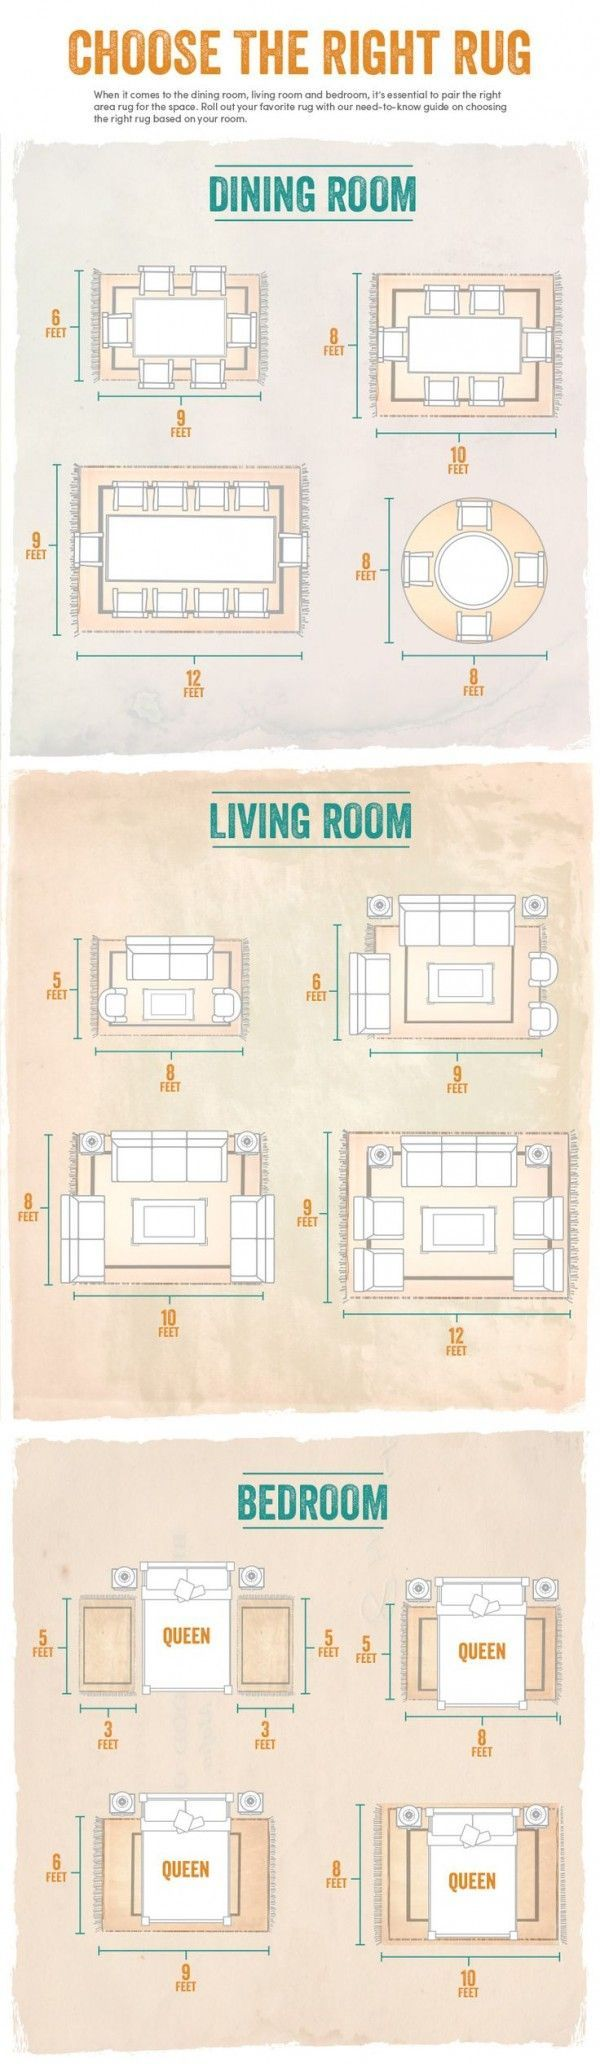 15 Home Decor Cheat Sheets That Will Have You Decorate Like A Pro